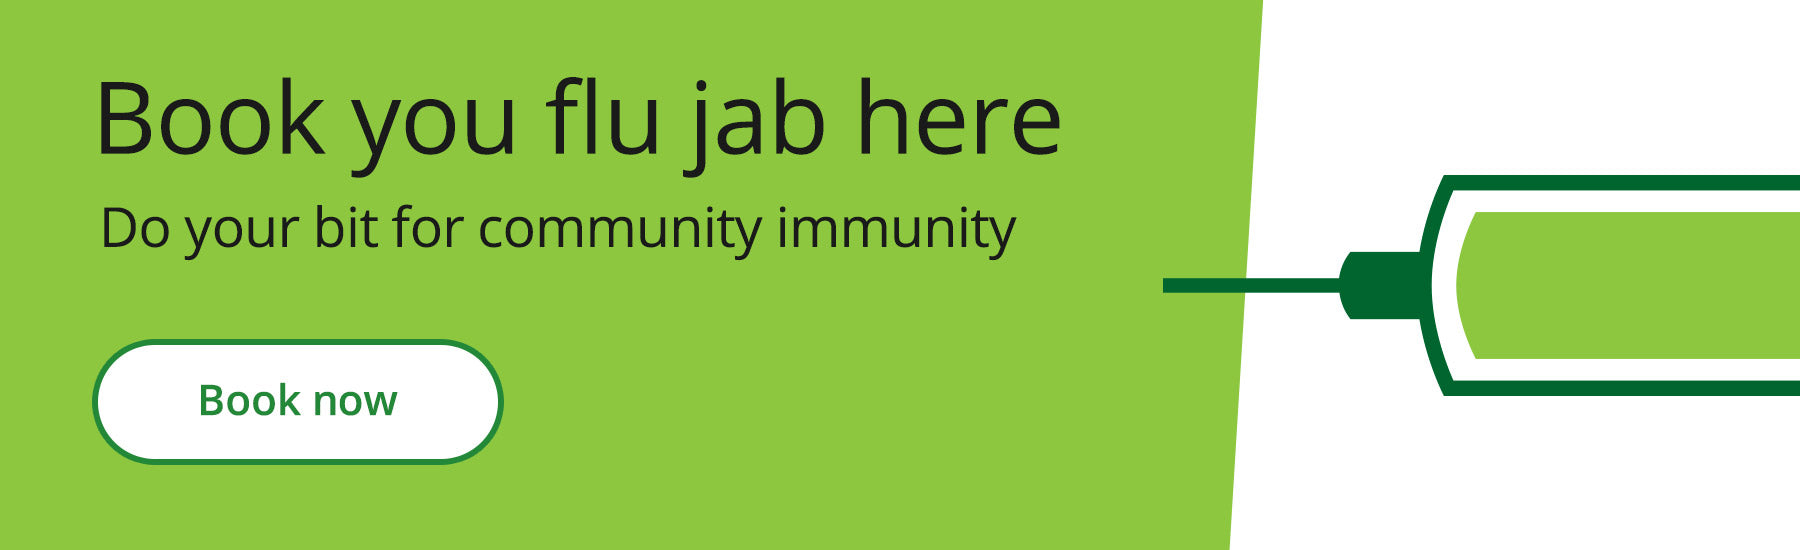 Book your flu jab